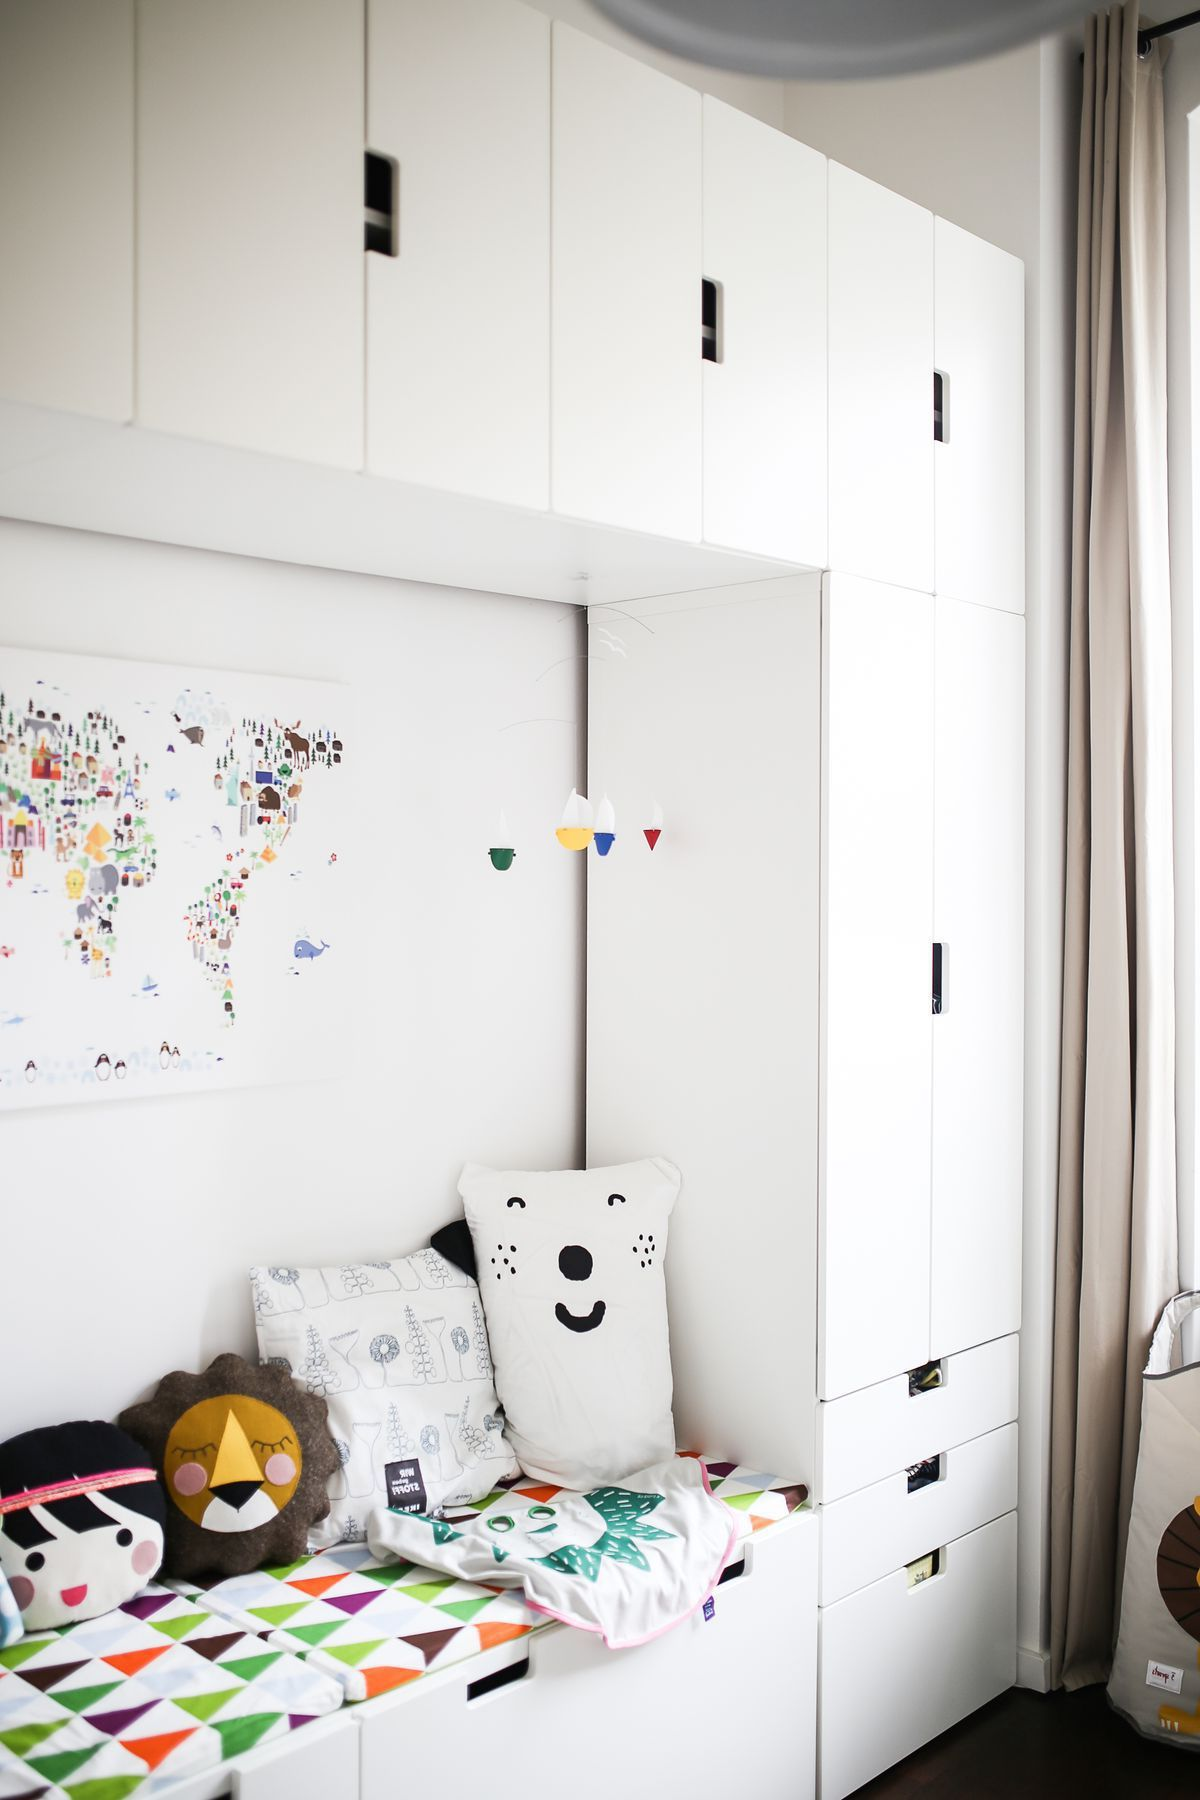 Couch And Storage Organization In The Nursery With The Help Of Ikea Stuva Series More Interiors Https En Ikea Club Or Kind Slaapkamers Ikea Ikea Kinderkamer